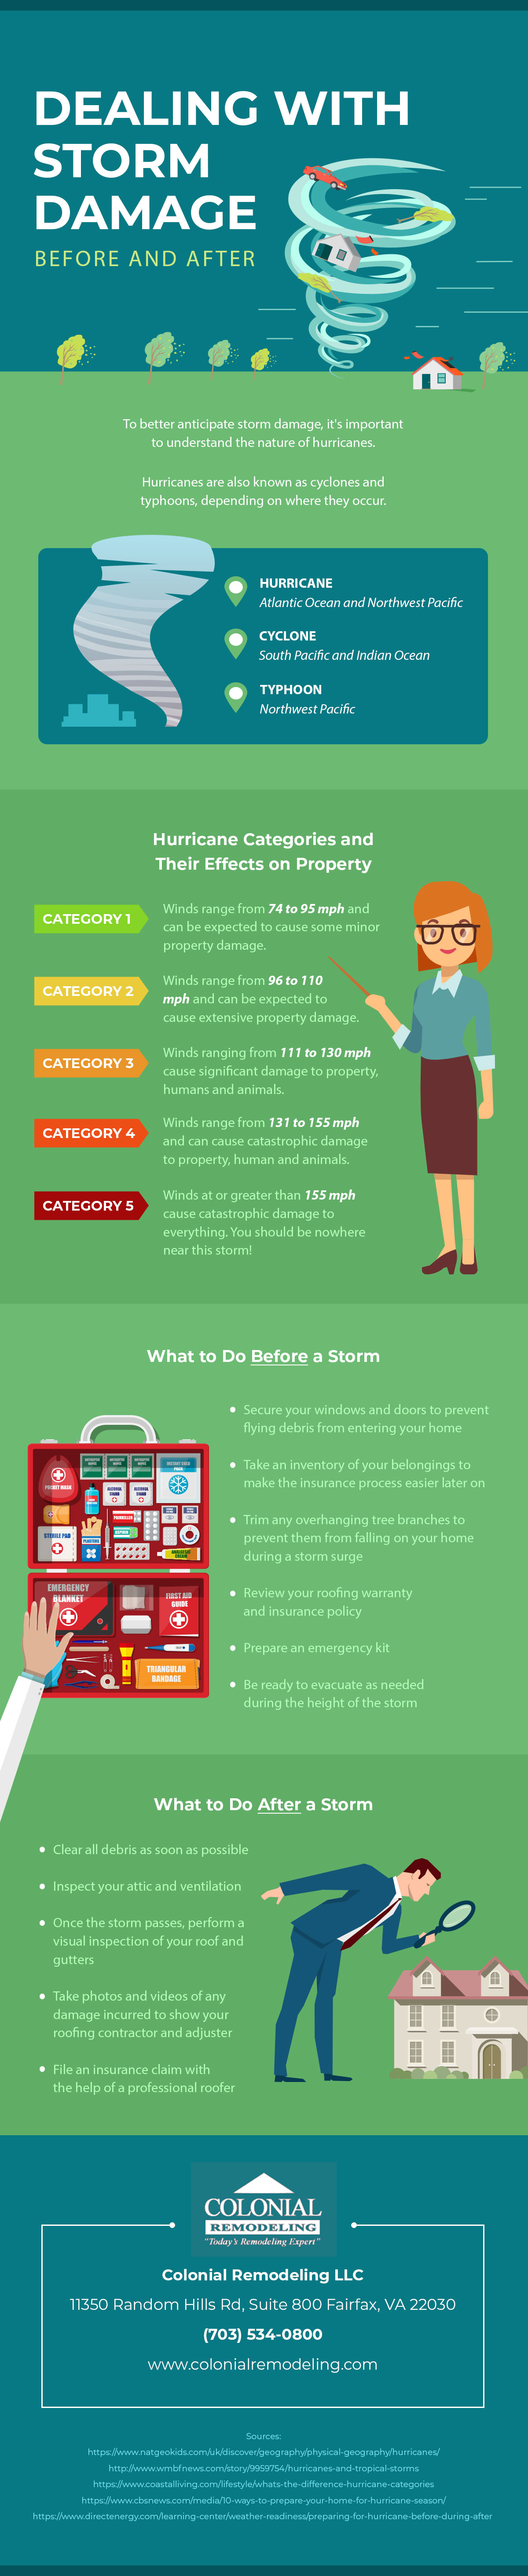 [INFOGRAPHIC] Dealing with Storm Damage: Before and After ...